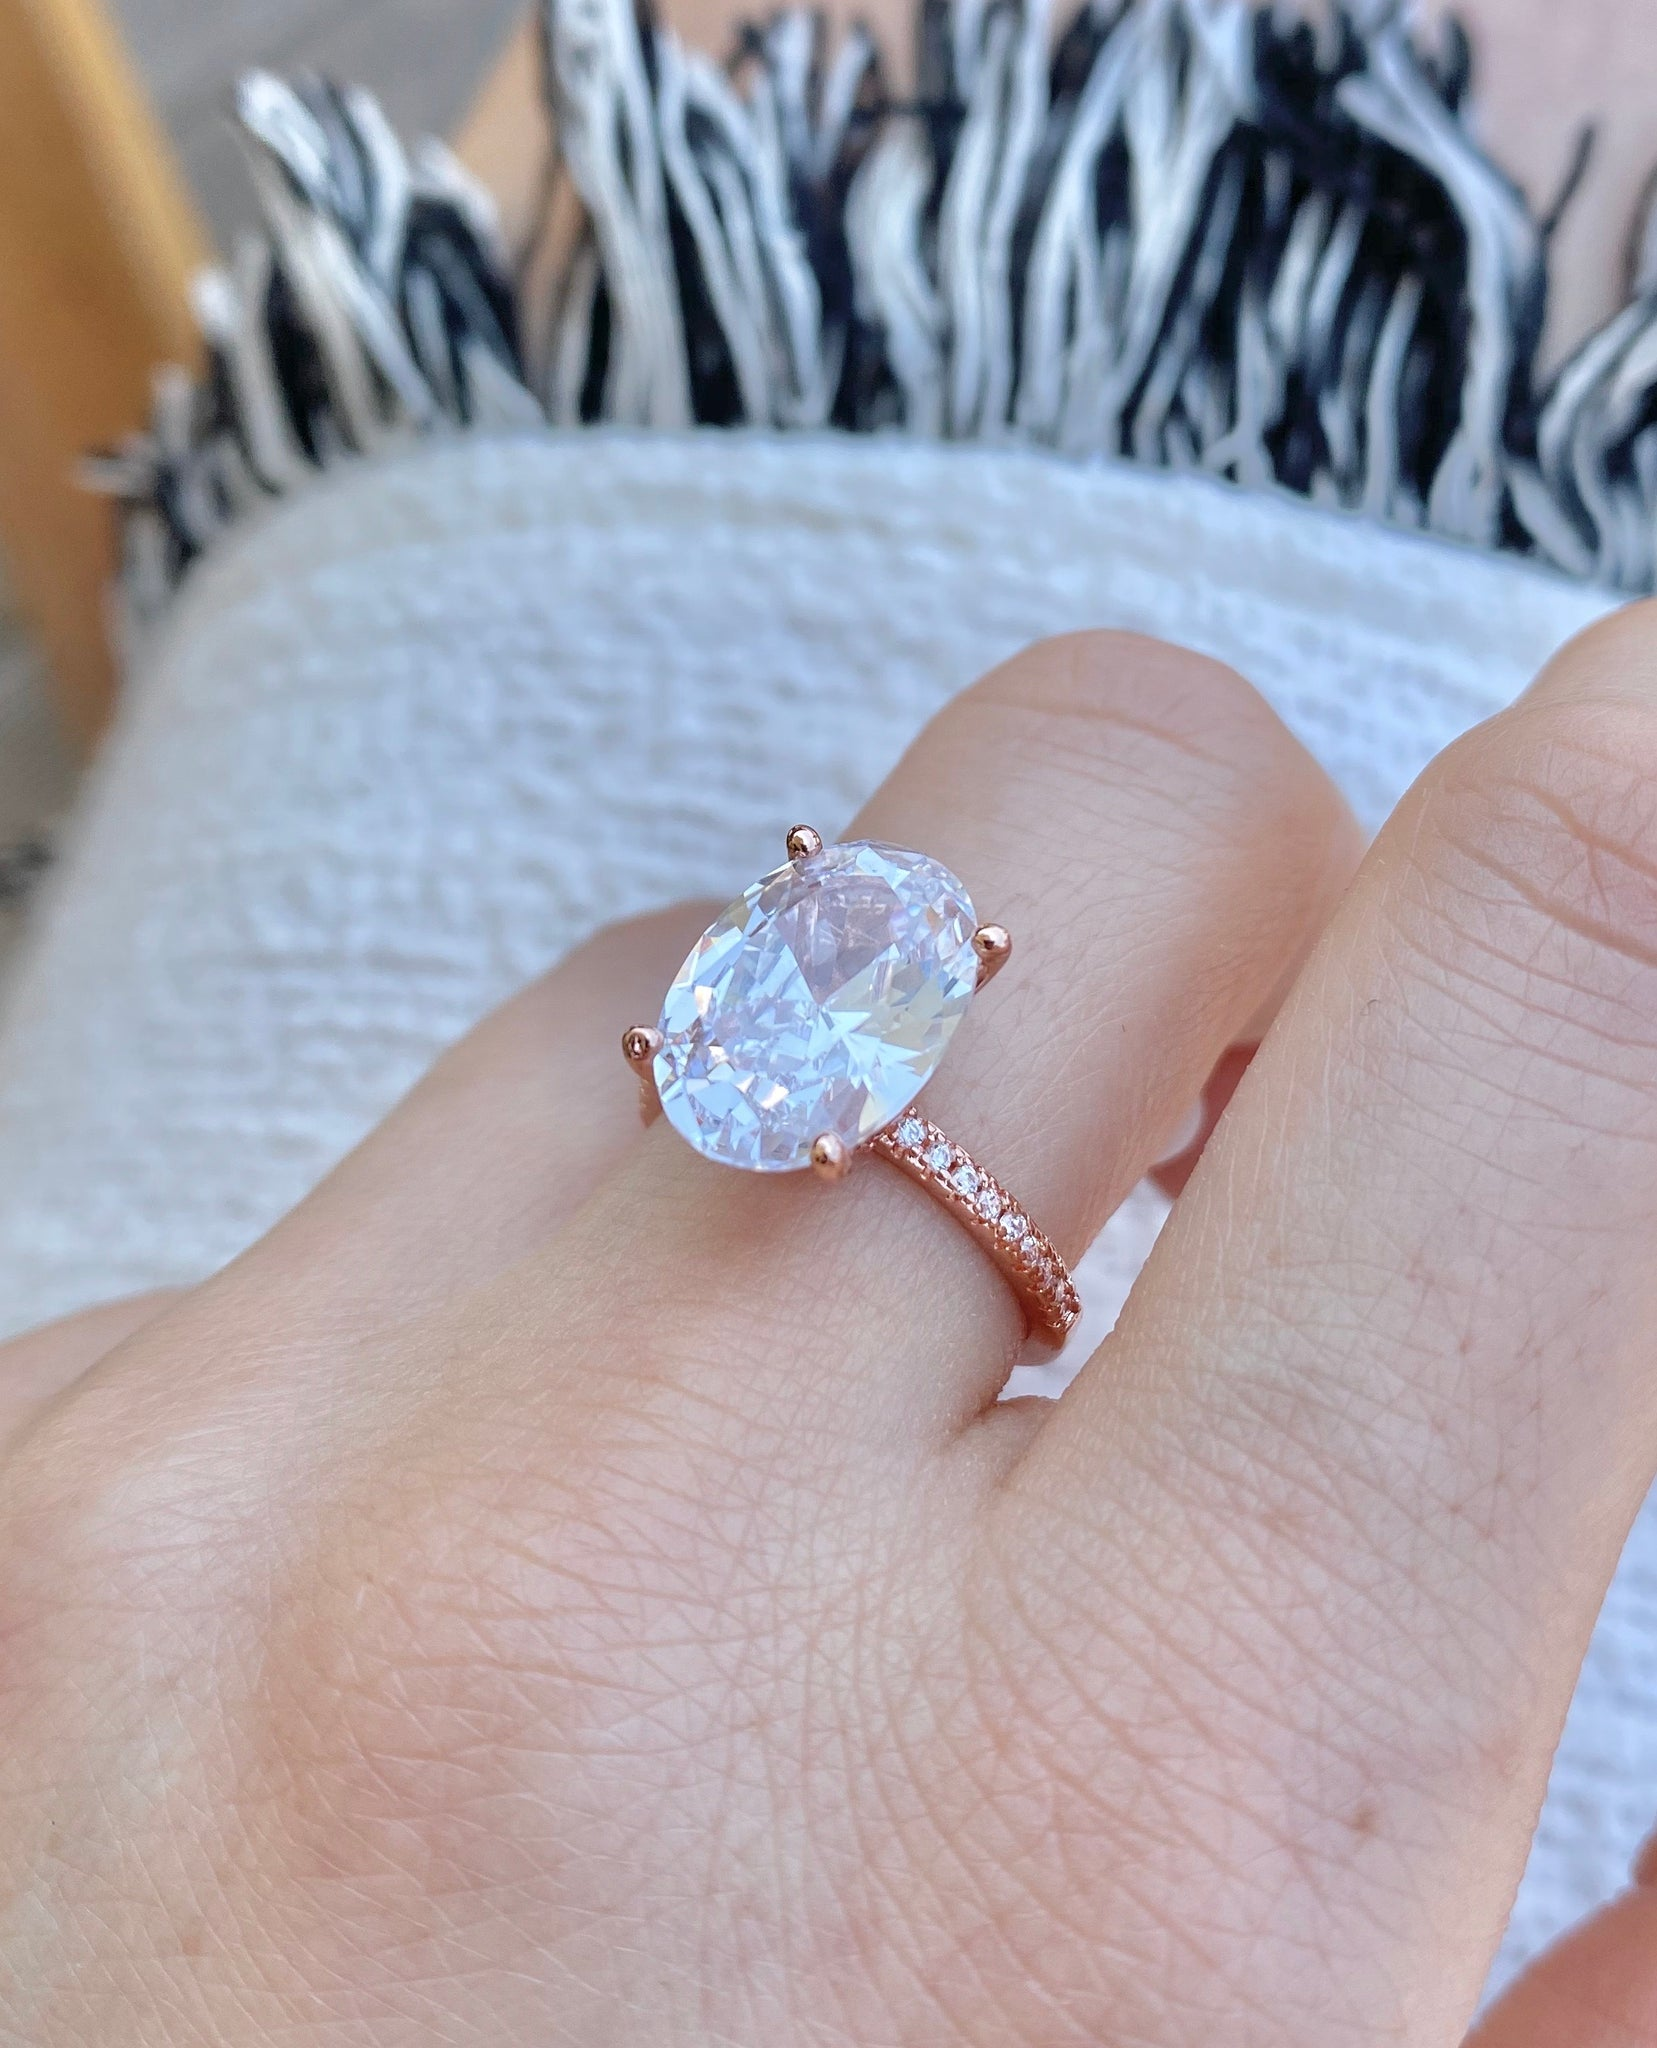 ROSE GOLD OVAL SOLITARE RING